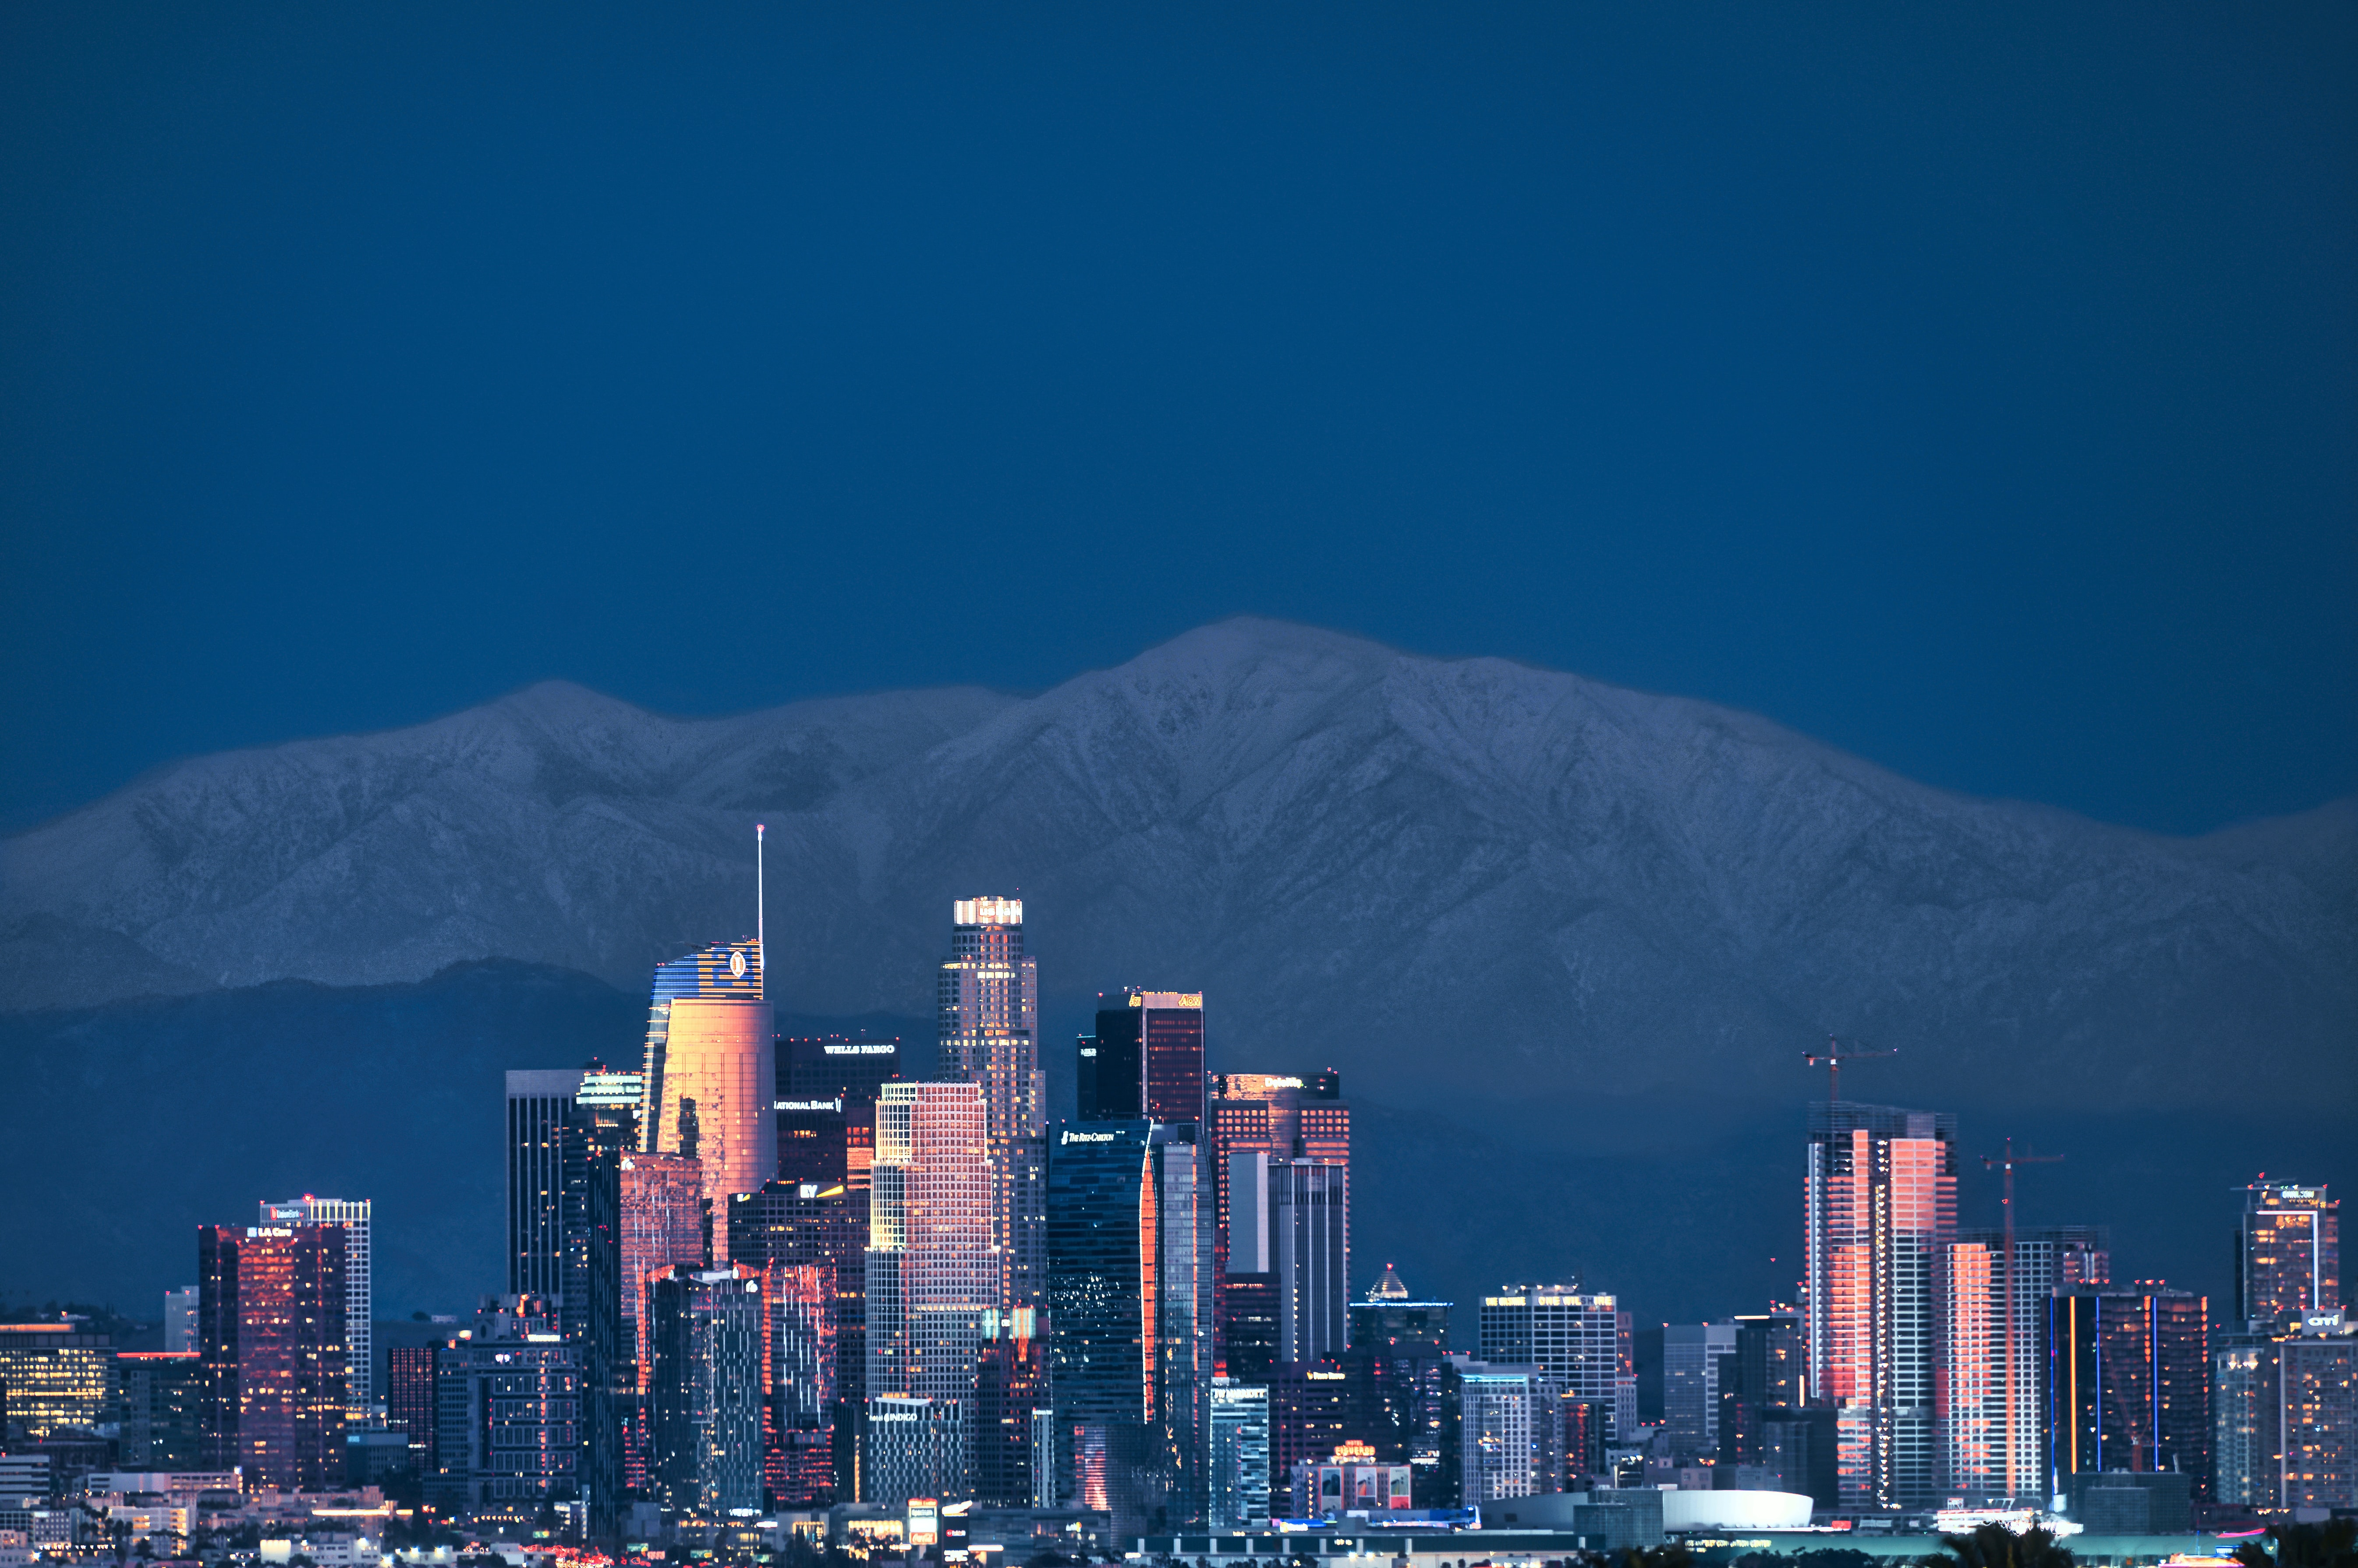 Our home base is in Los Angeles.